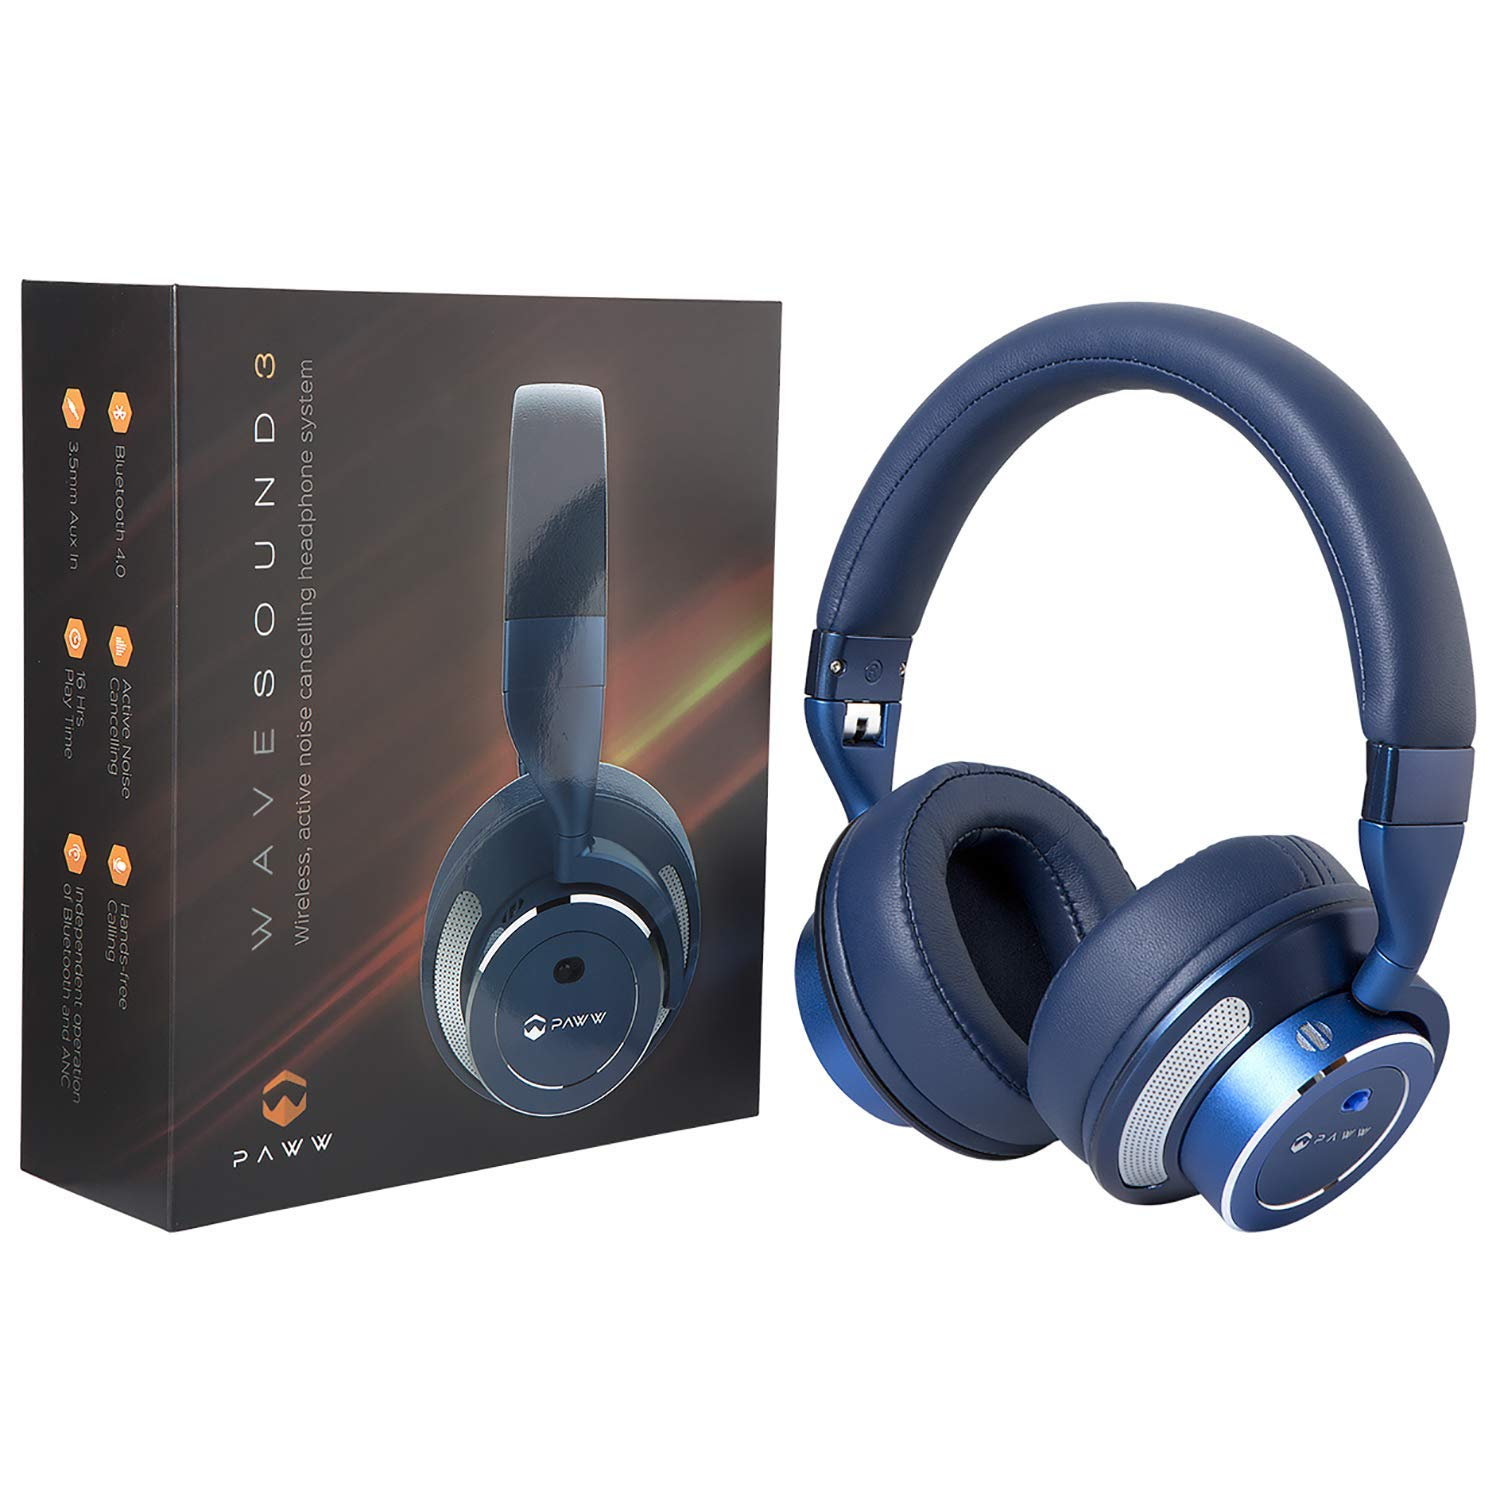 02f4c469480 Get Quotations · Paww WaveSound 3 Bluetooth Headphones – Active Noise  Cancelling Headphones with Airplane Adapter